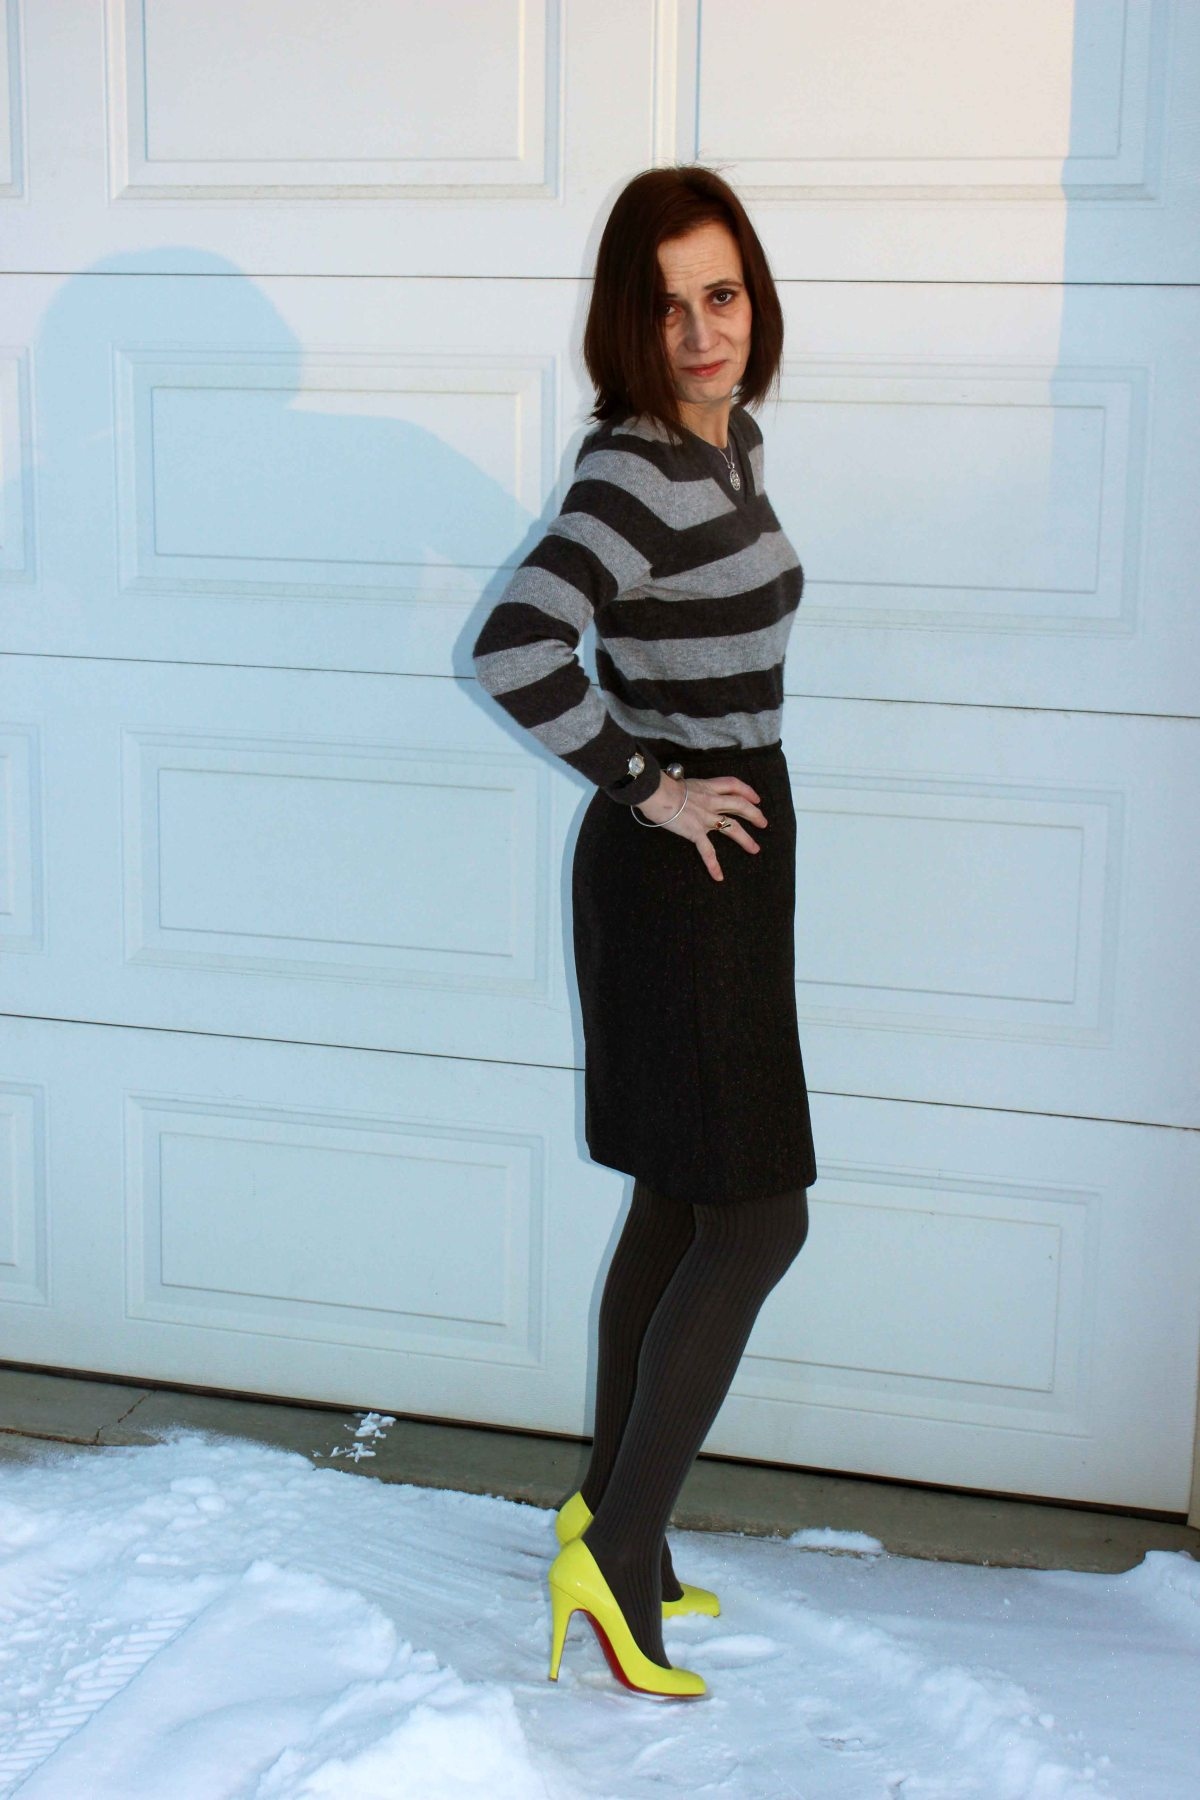 midlife style blogger donning neon shoes with a tweet skirt and striped cashmere sweater